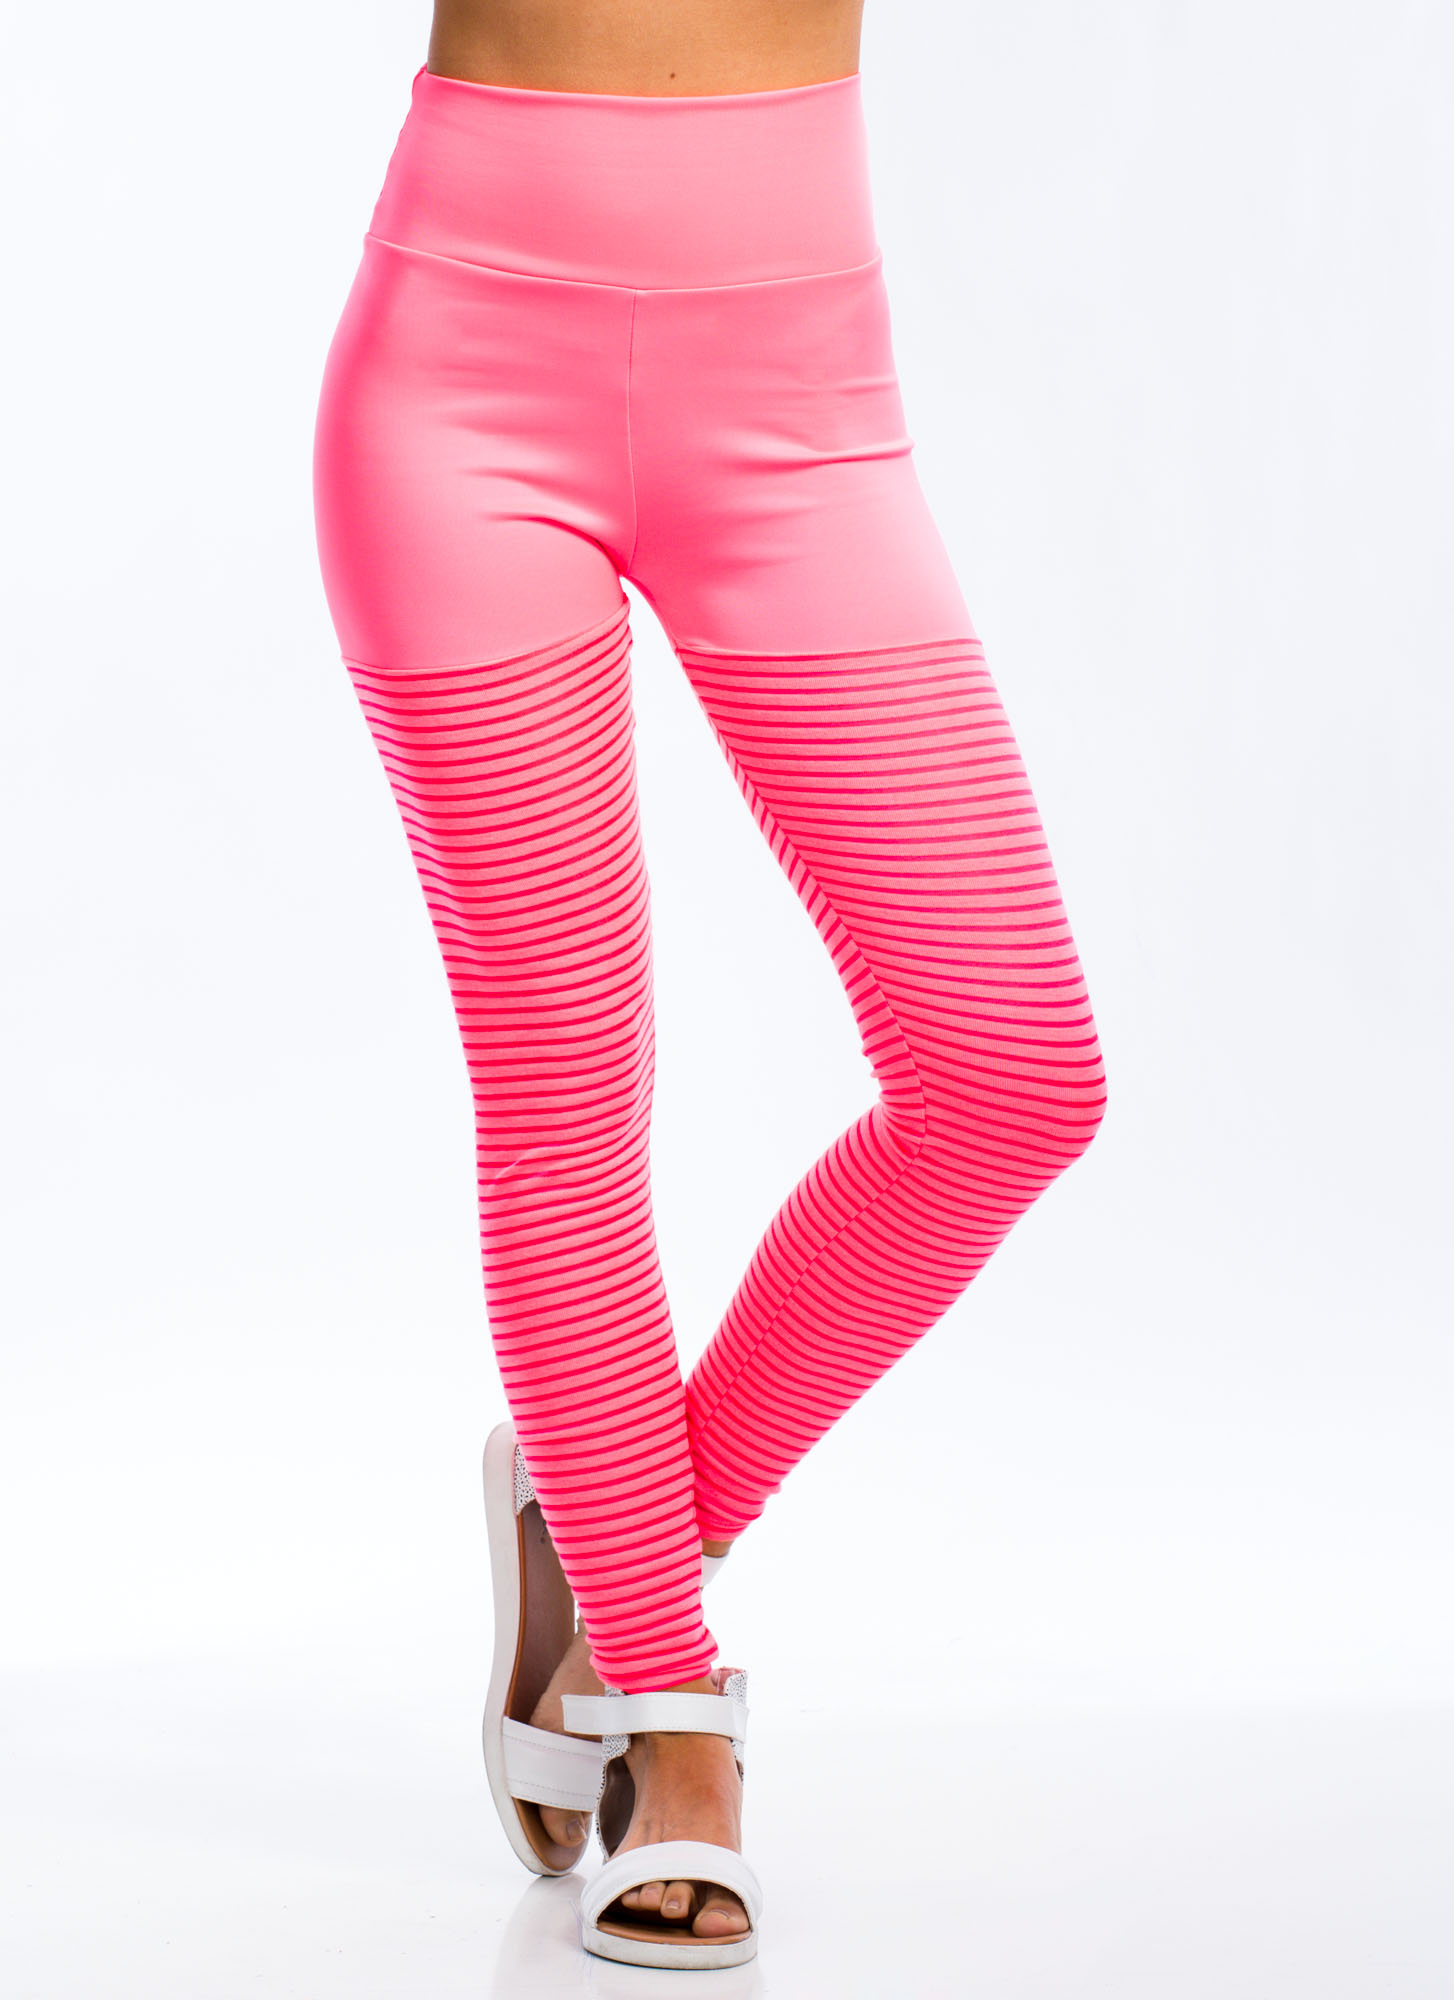 Sheer Thing Leggings NEONPINK